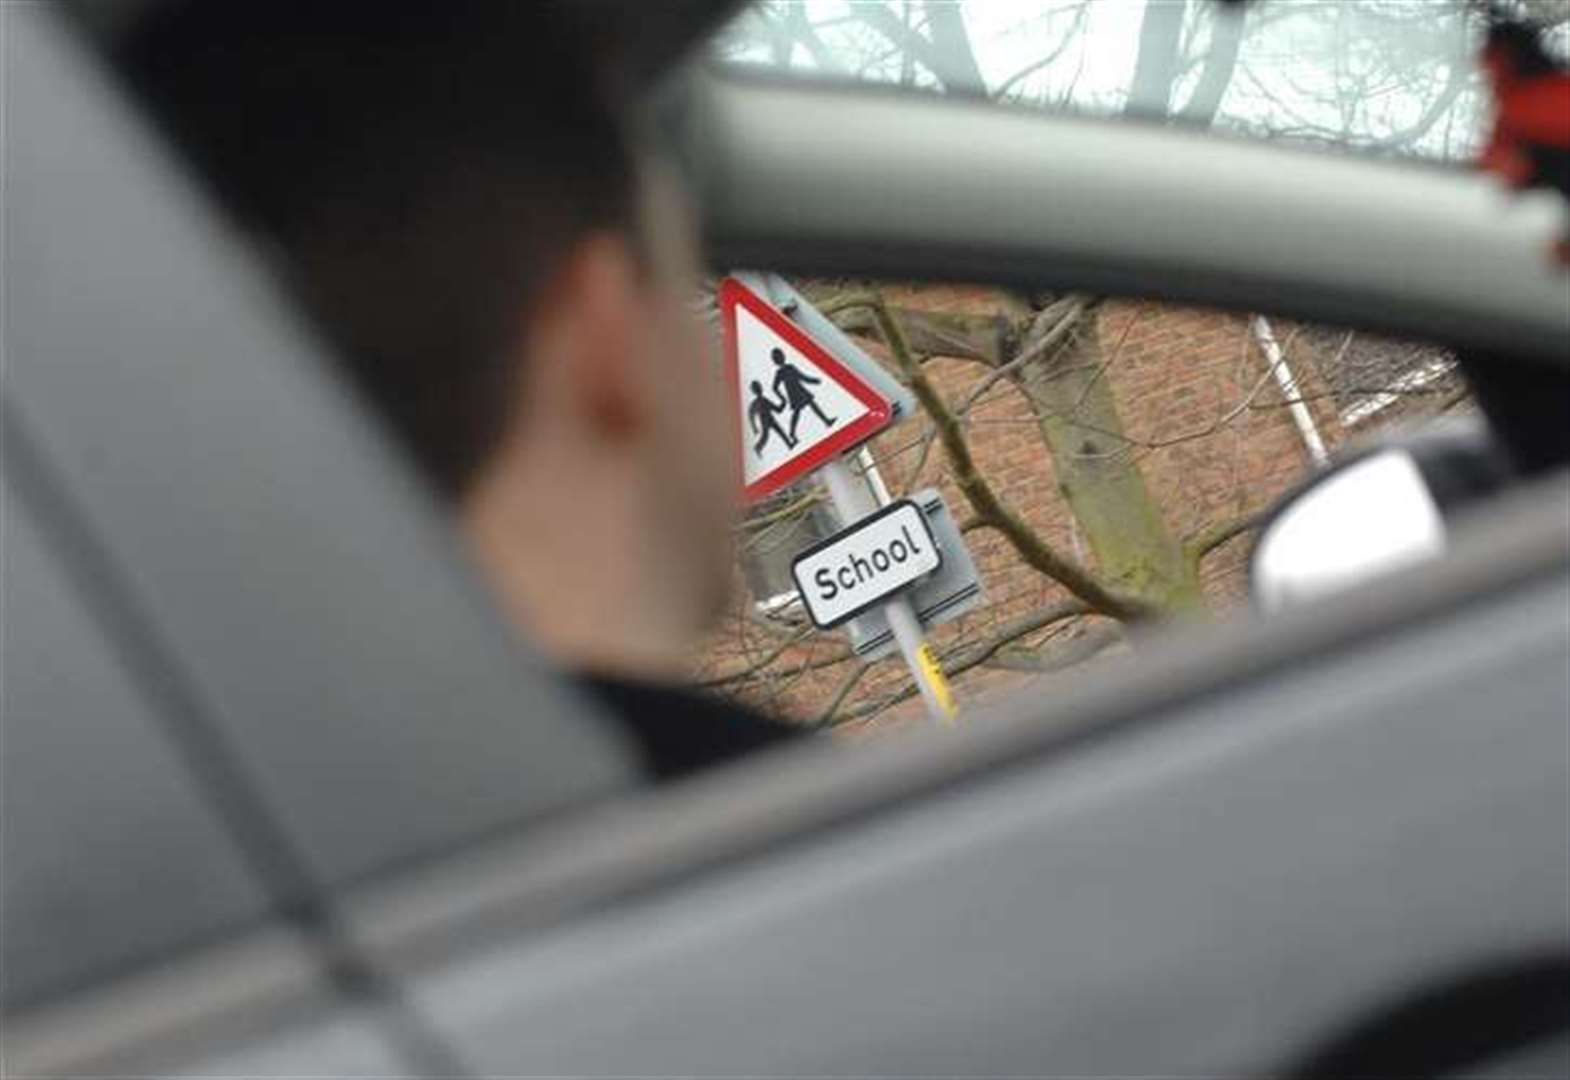 Claims of 'ignorance' as driver awareness courses continue